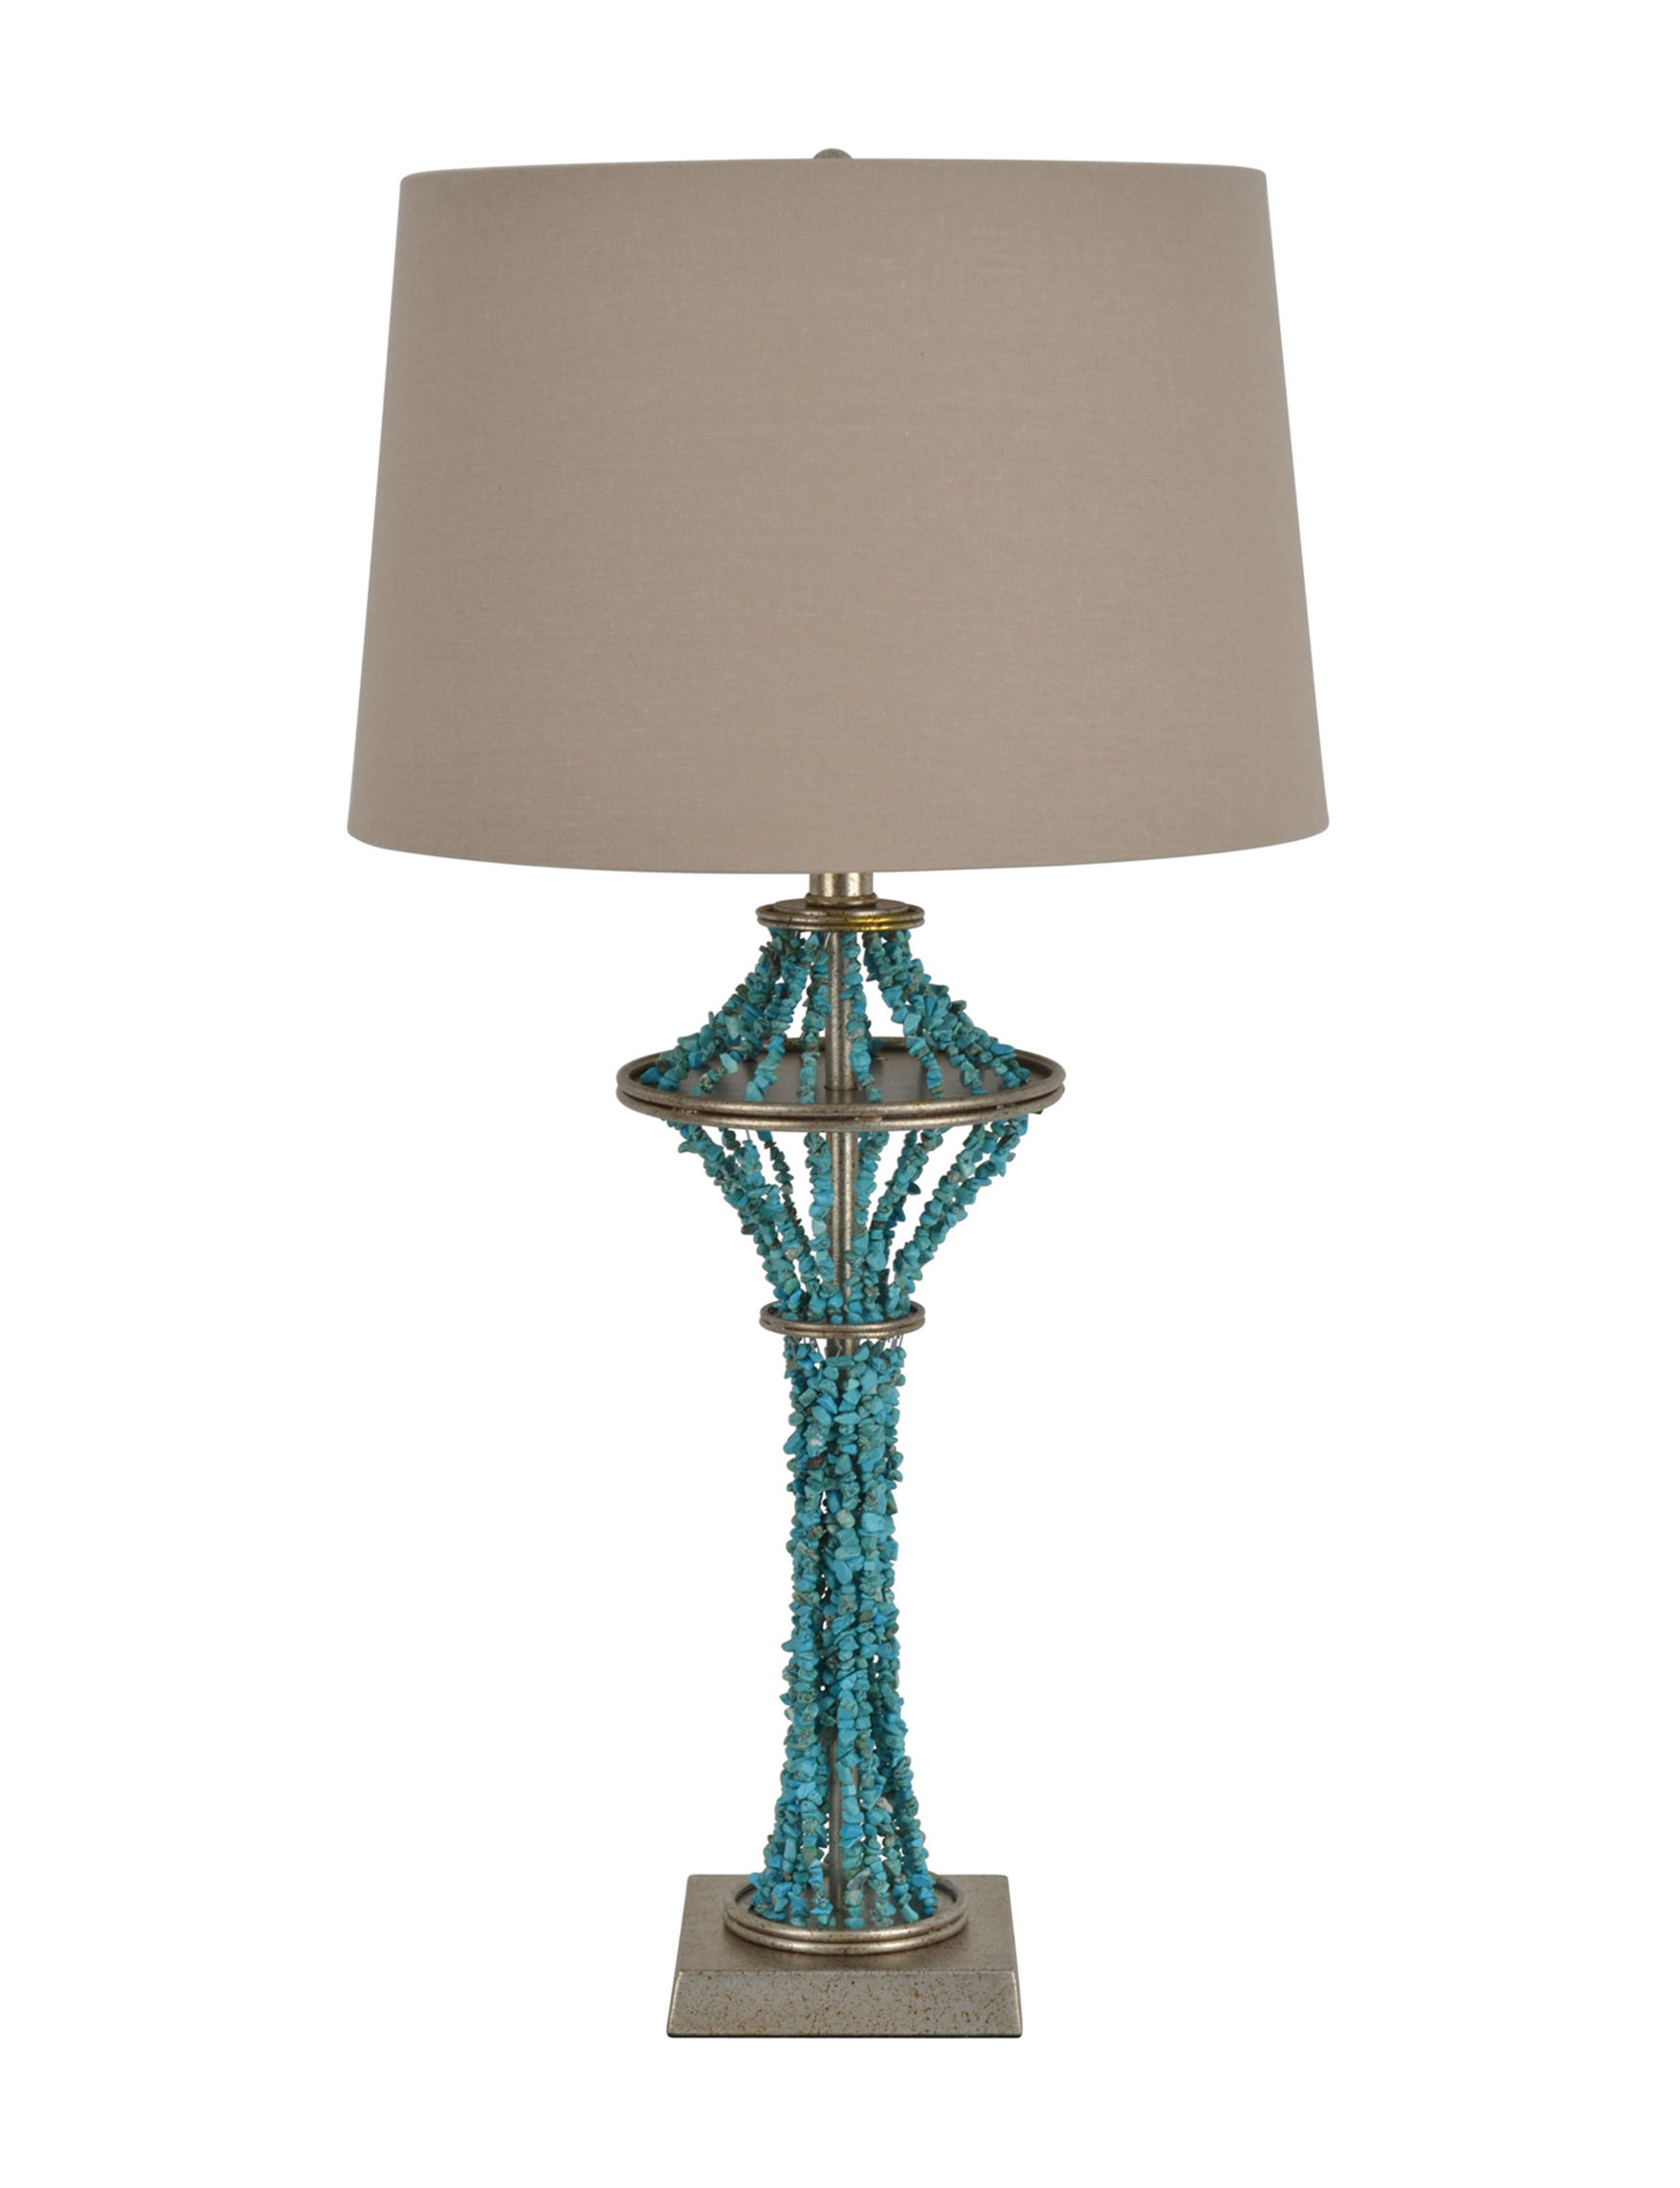 Decor Therapy Turqouise Table Lamps Lighting & Lamps